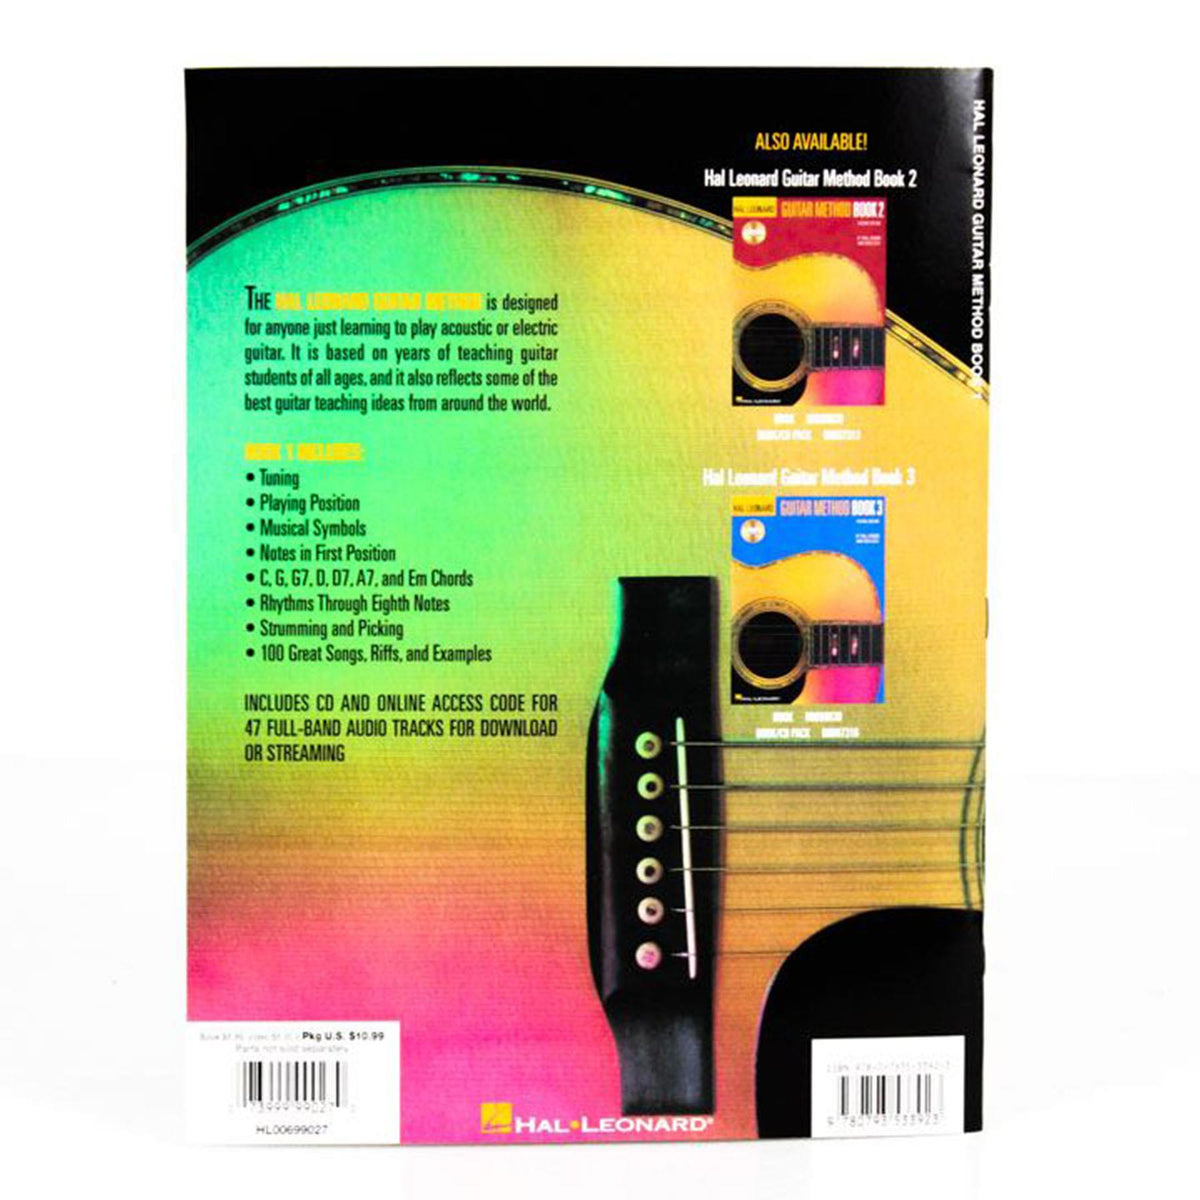 Hal Leonard Guitar Method Book 1 Book/CD/Online Audio Pack